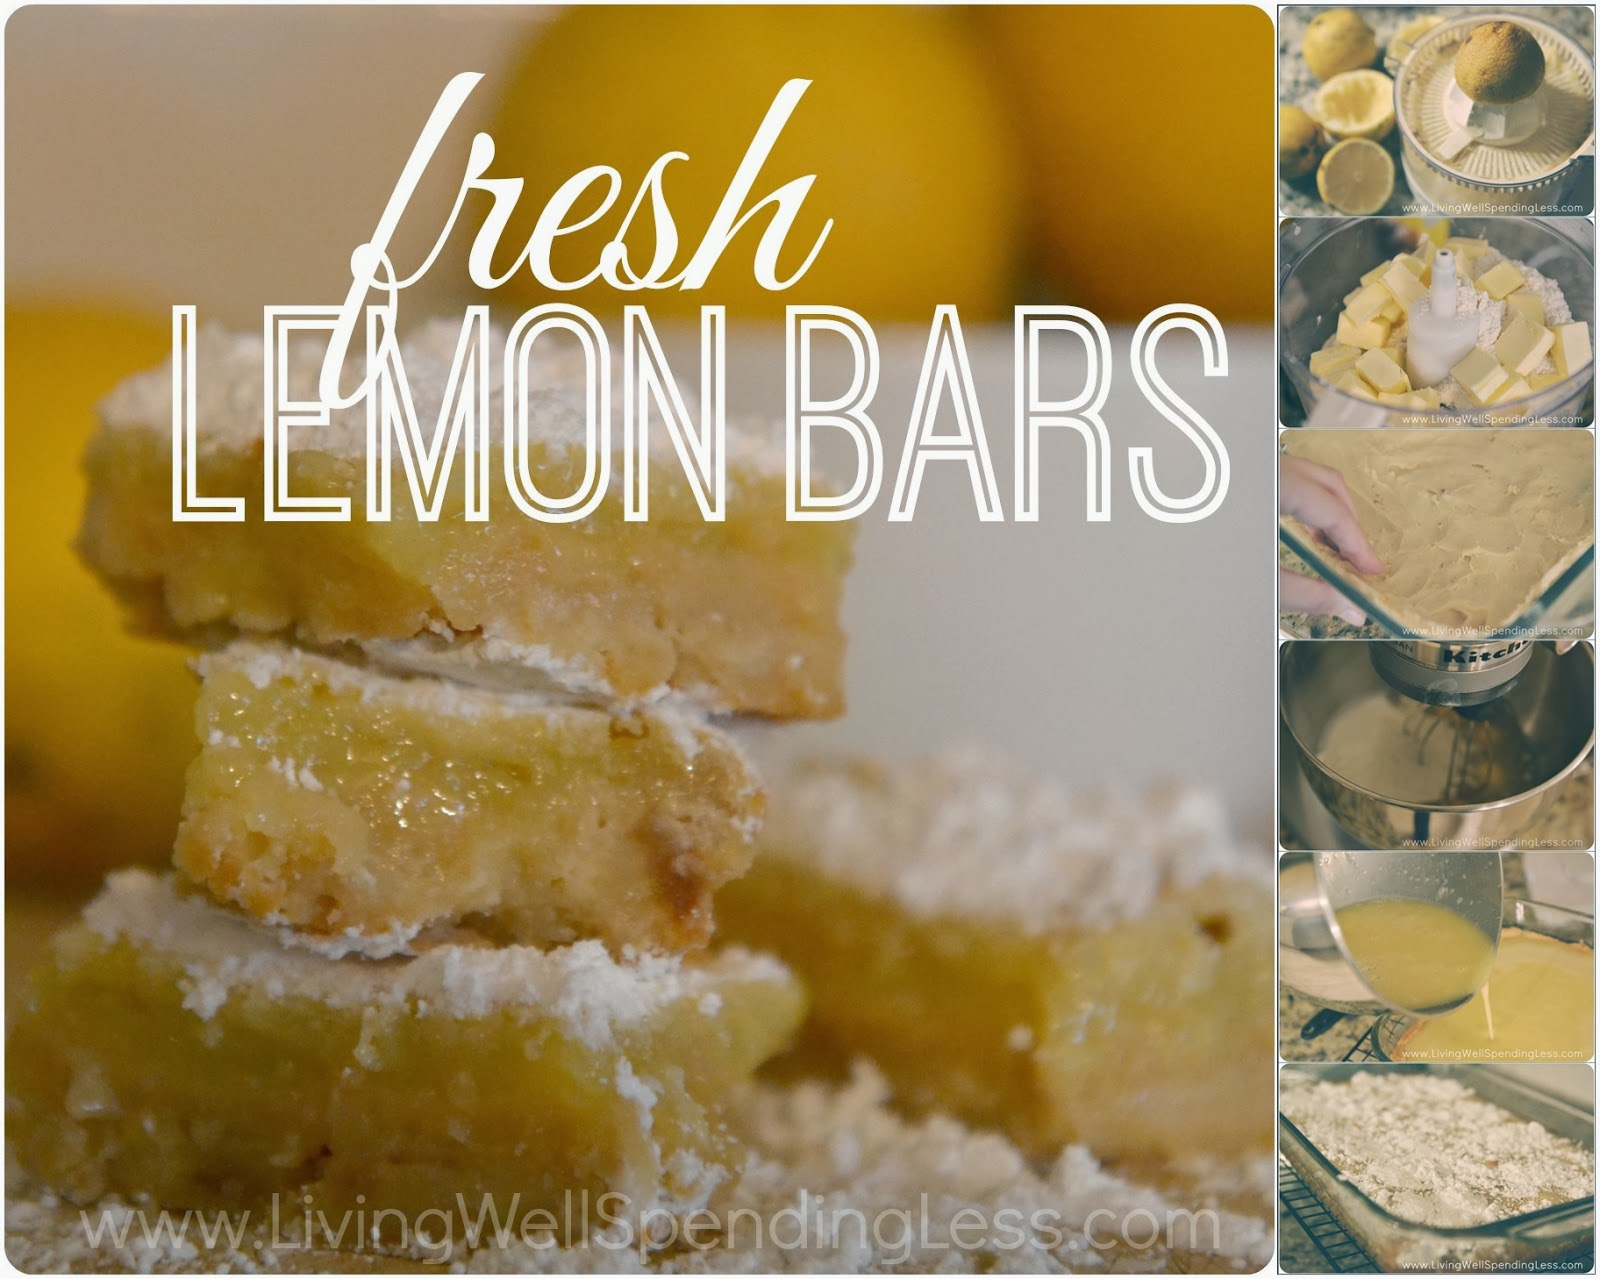 Fresh Lemon Bars Recipe